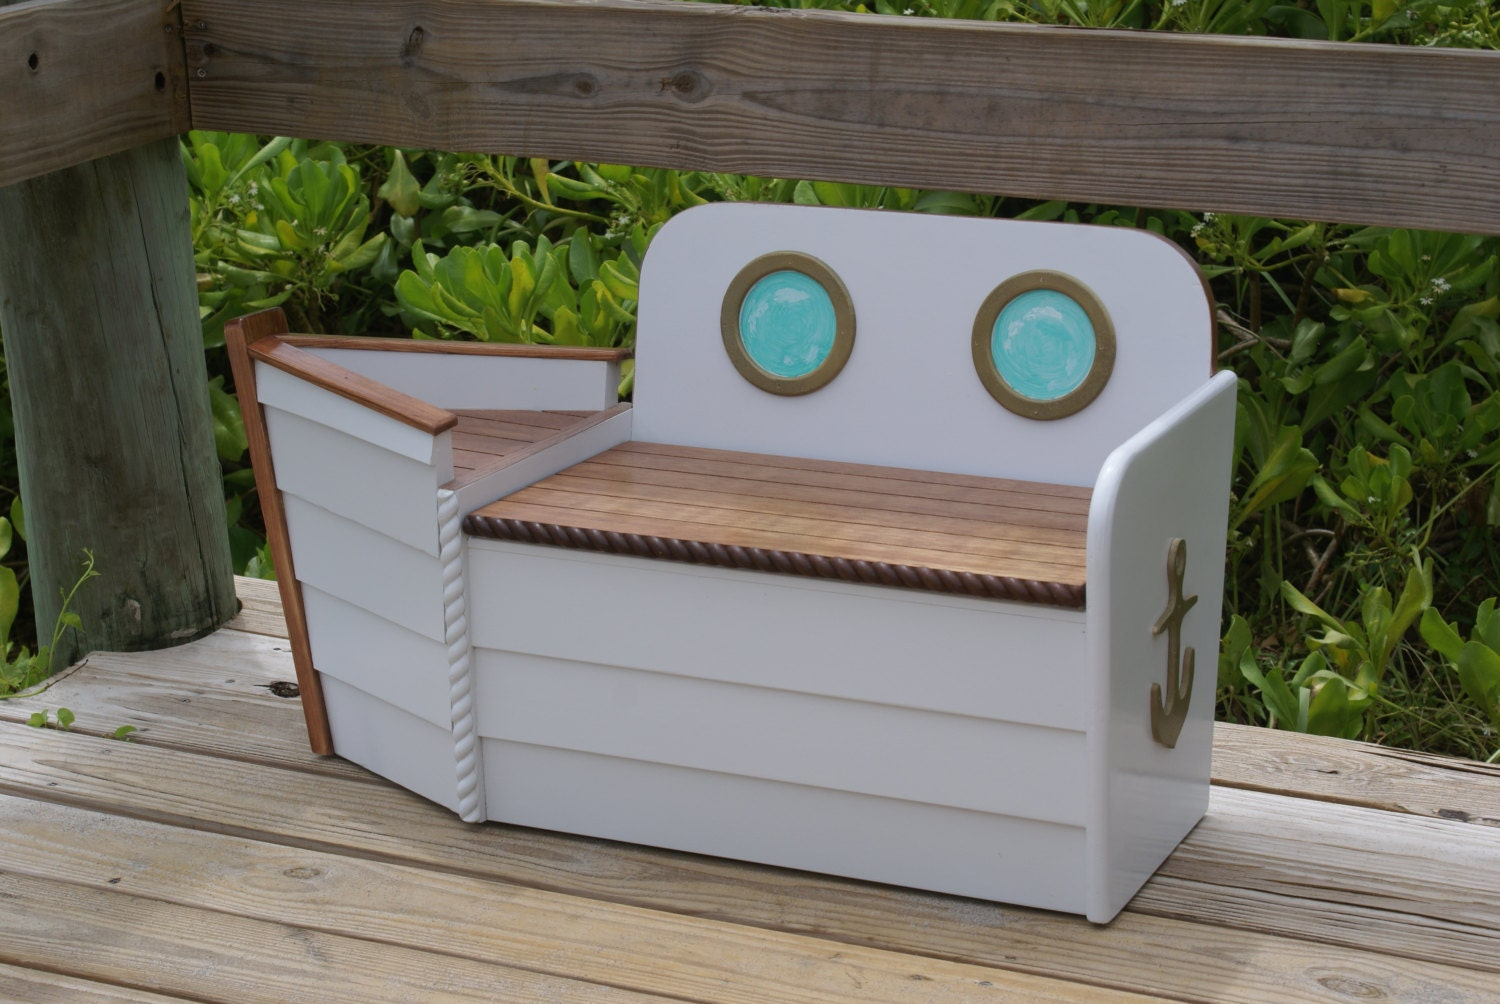 New Bookcase Toy Box White Finish Bedroom Playroom Child: Toy Box Toy ChestNautical Toy Box FREE SHIPPING White